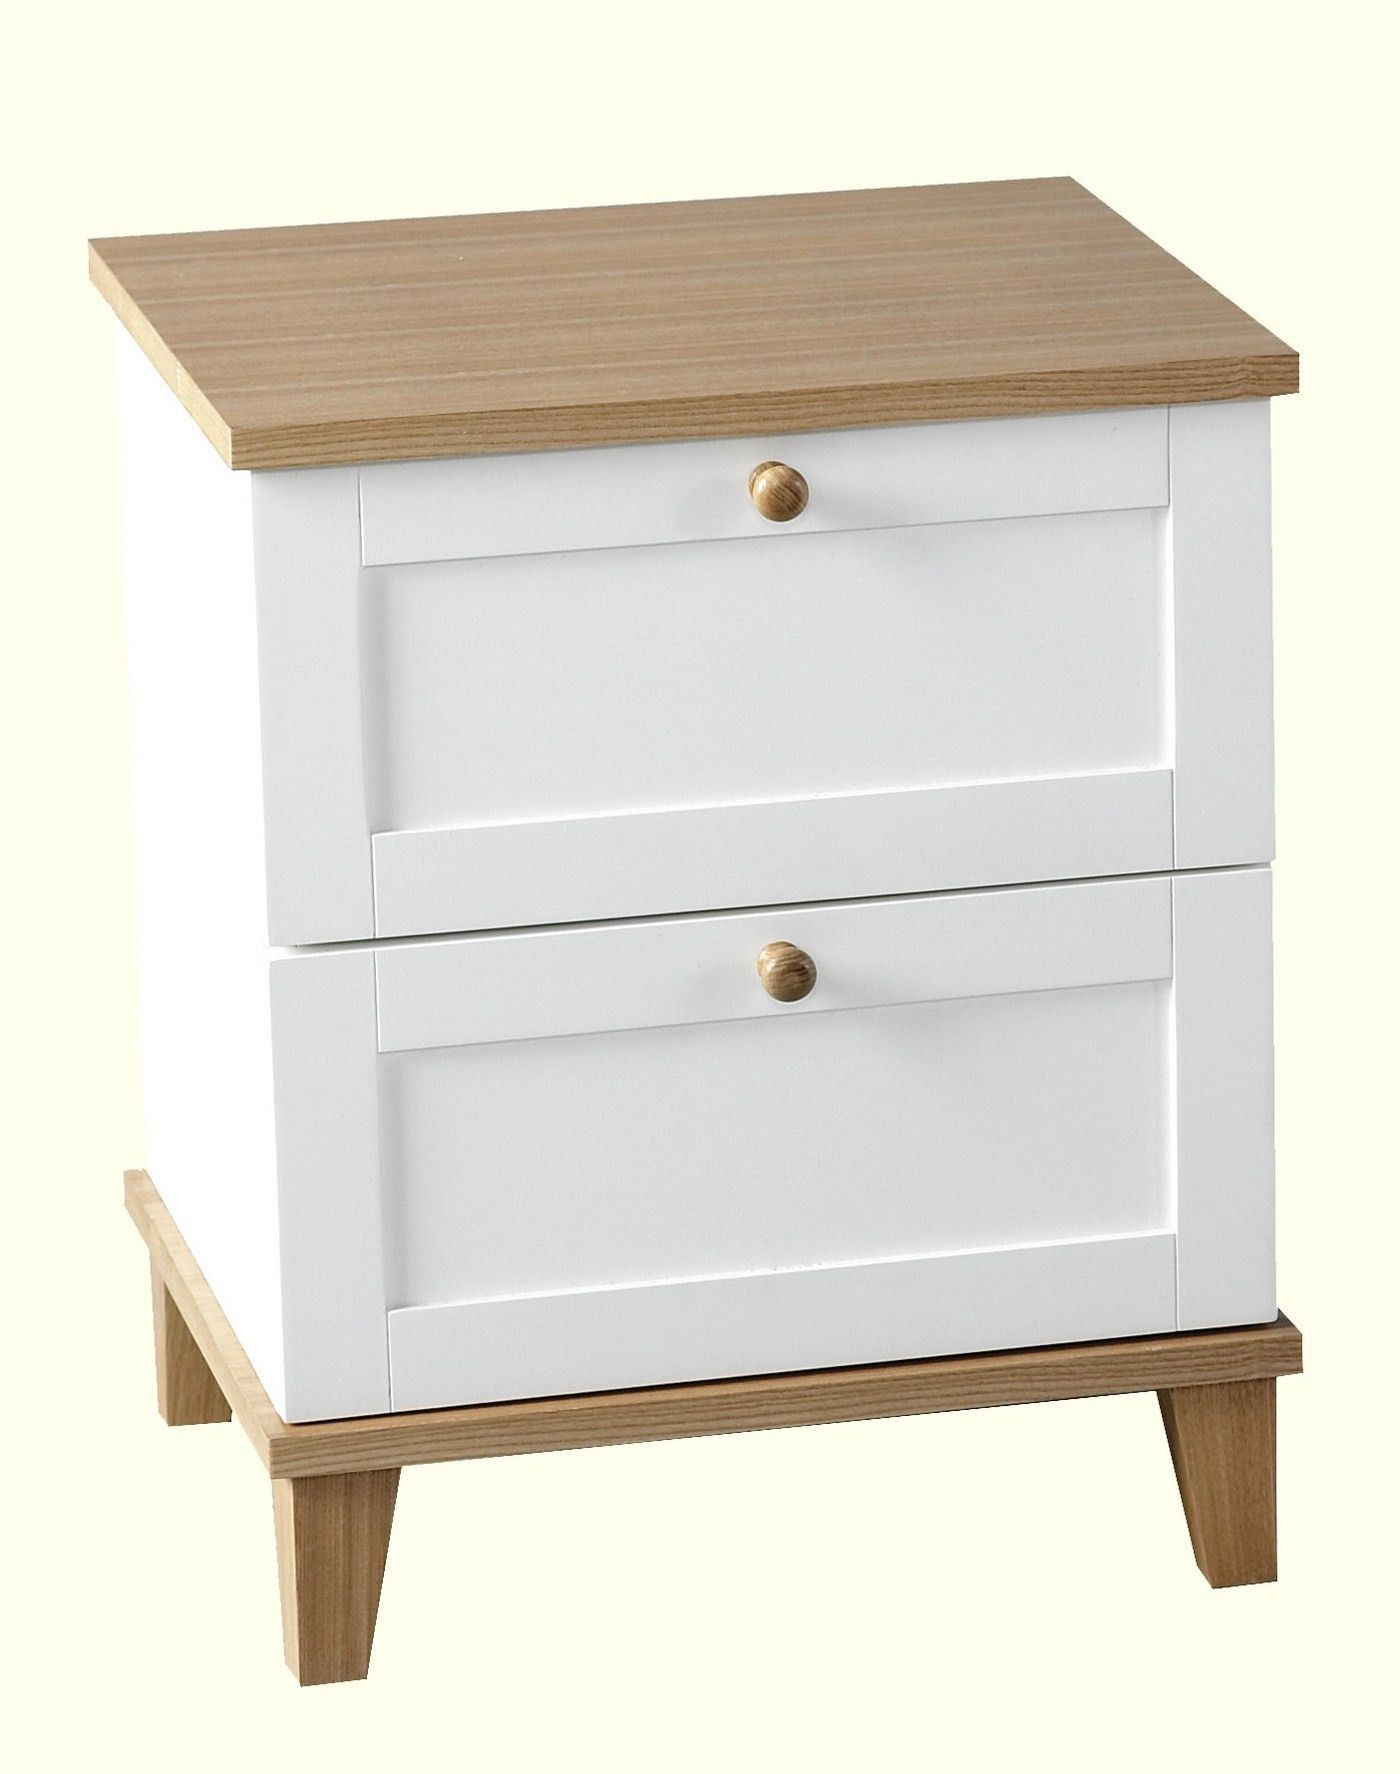 White side tables with drawers - Bedside Table Ikea